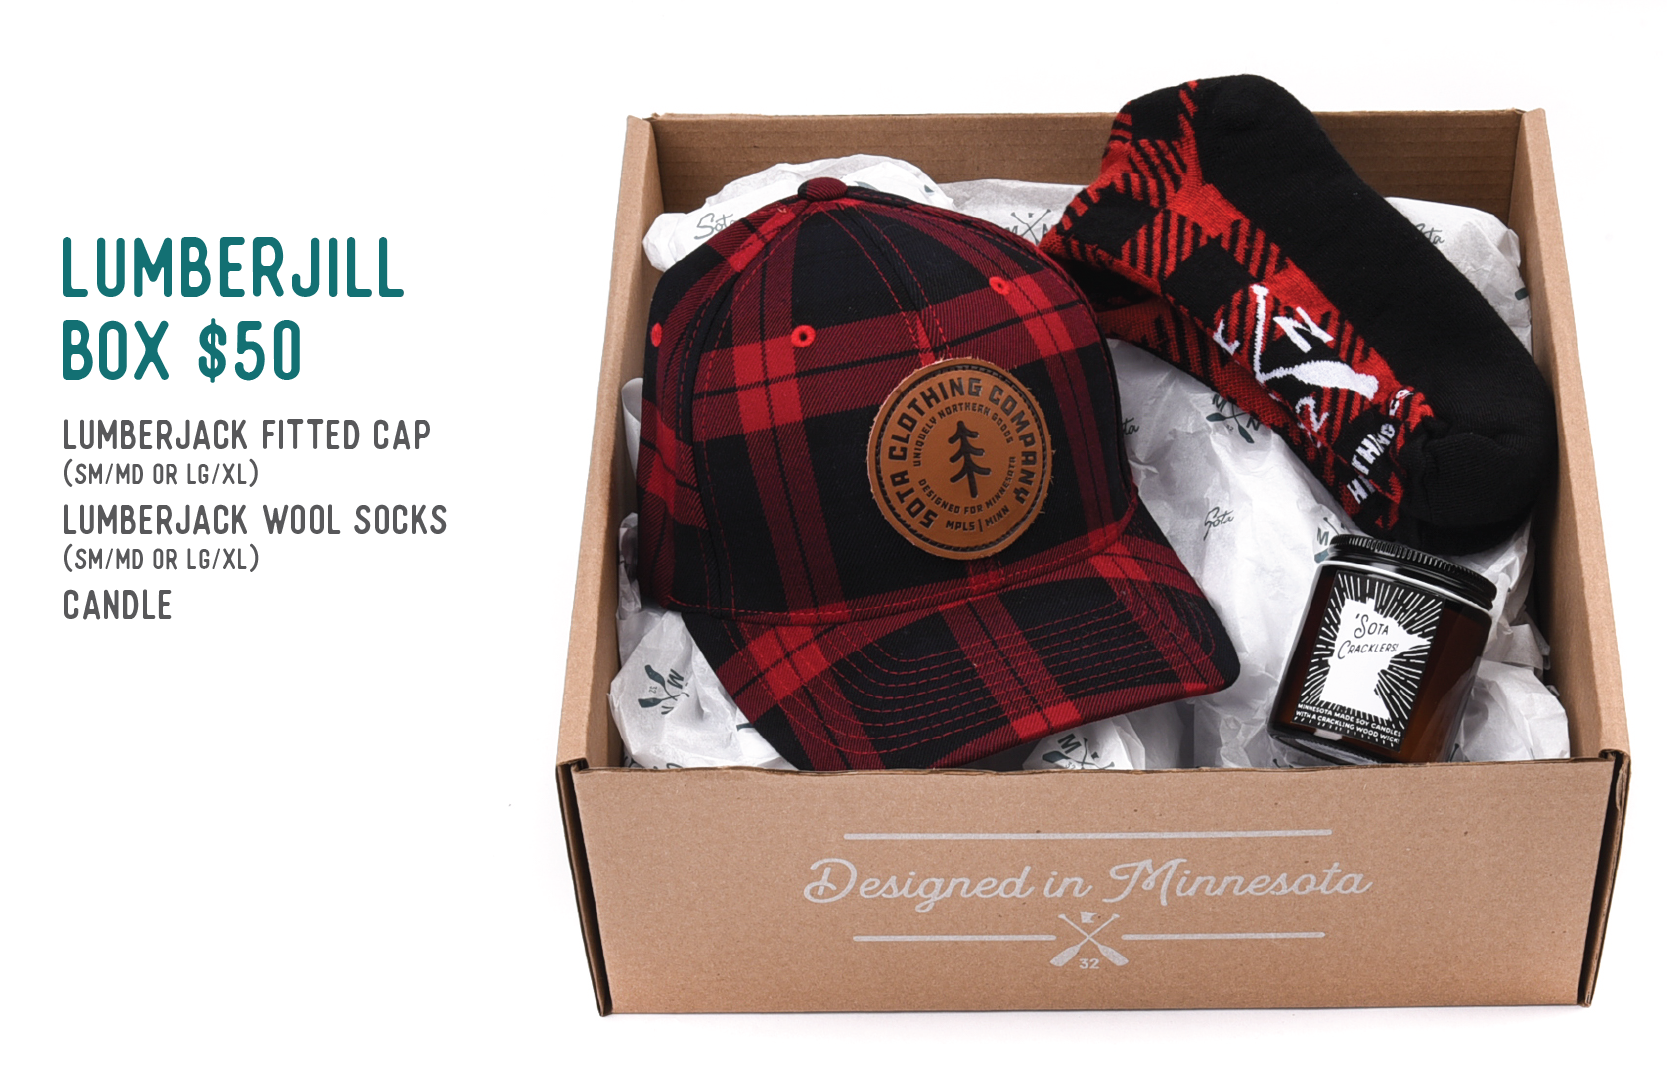 Lumberjill Box $50